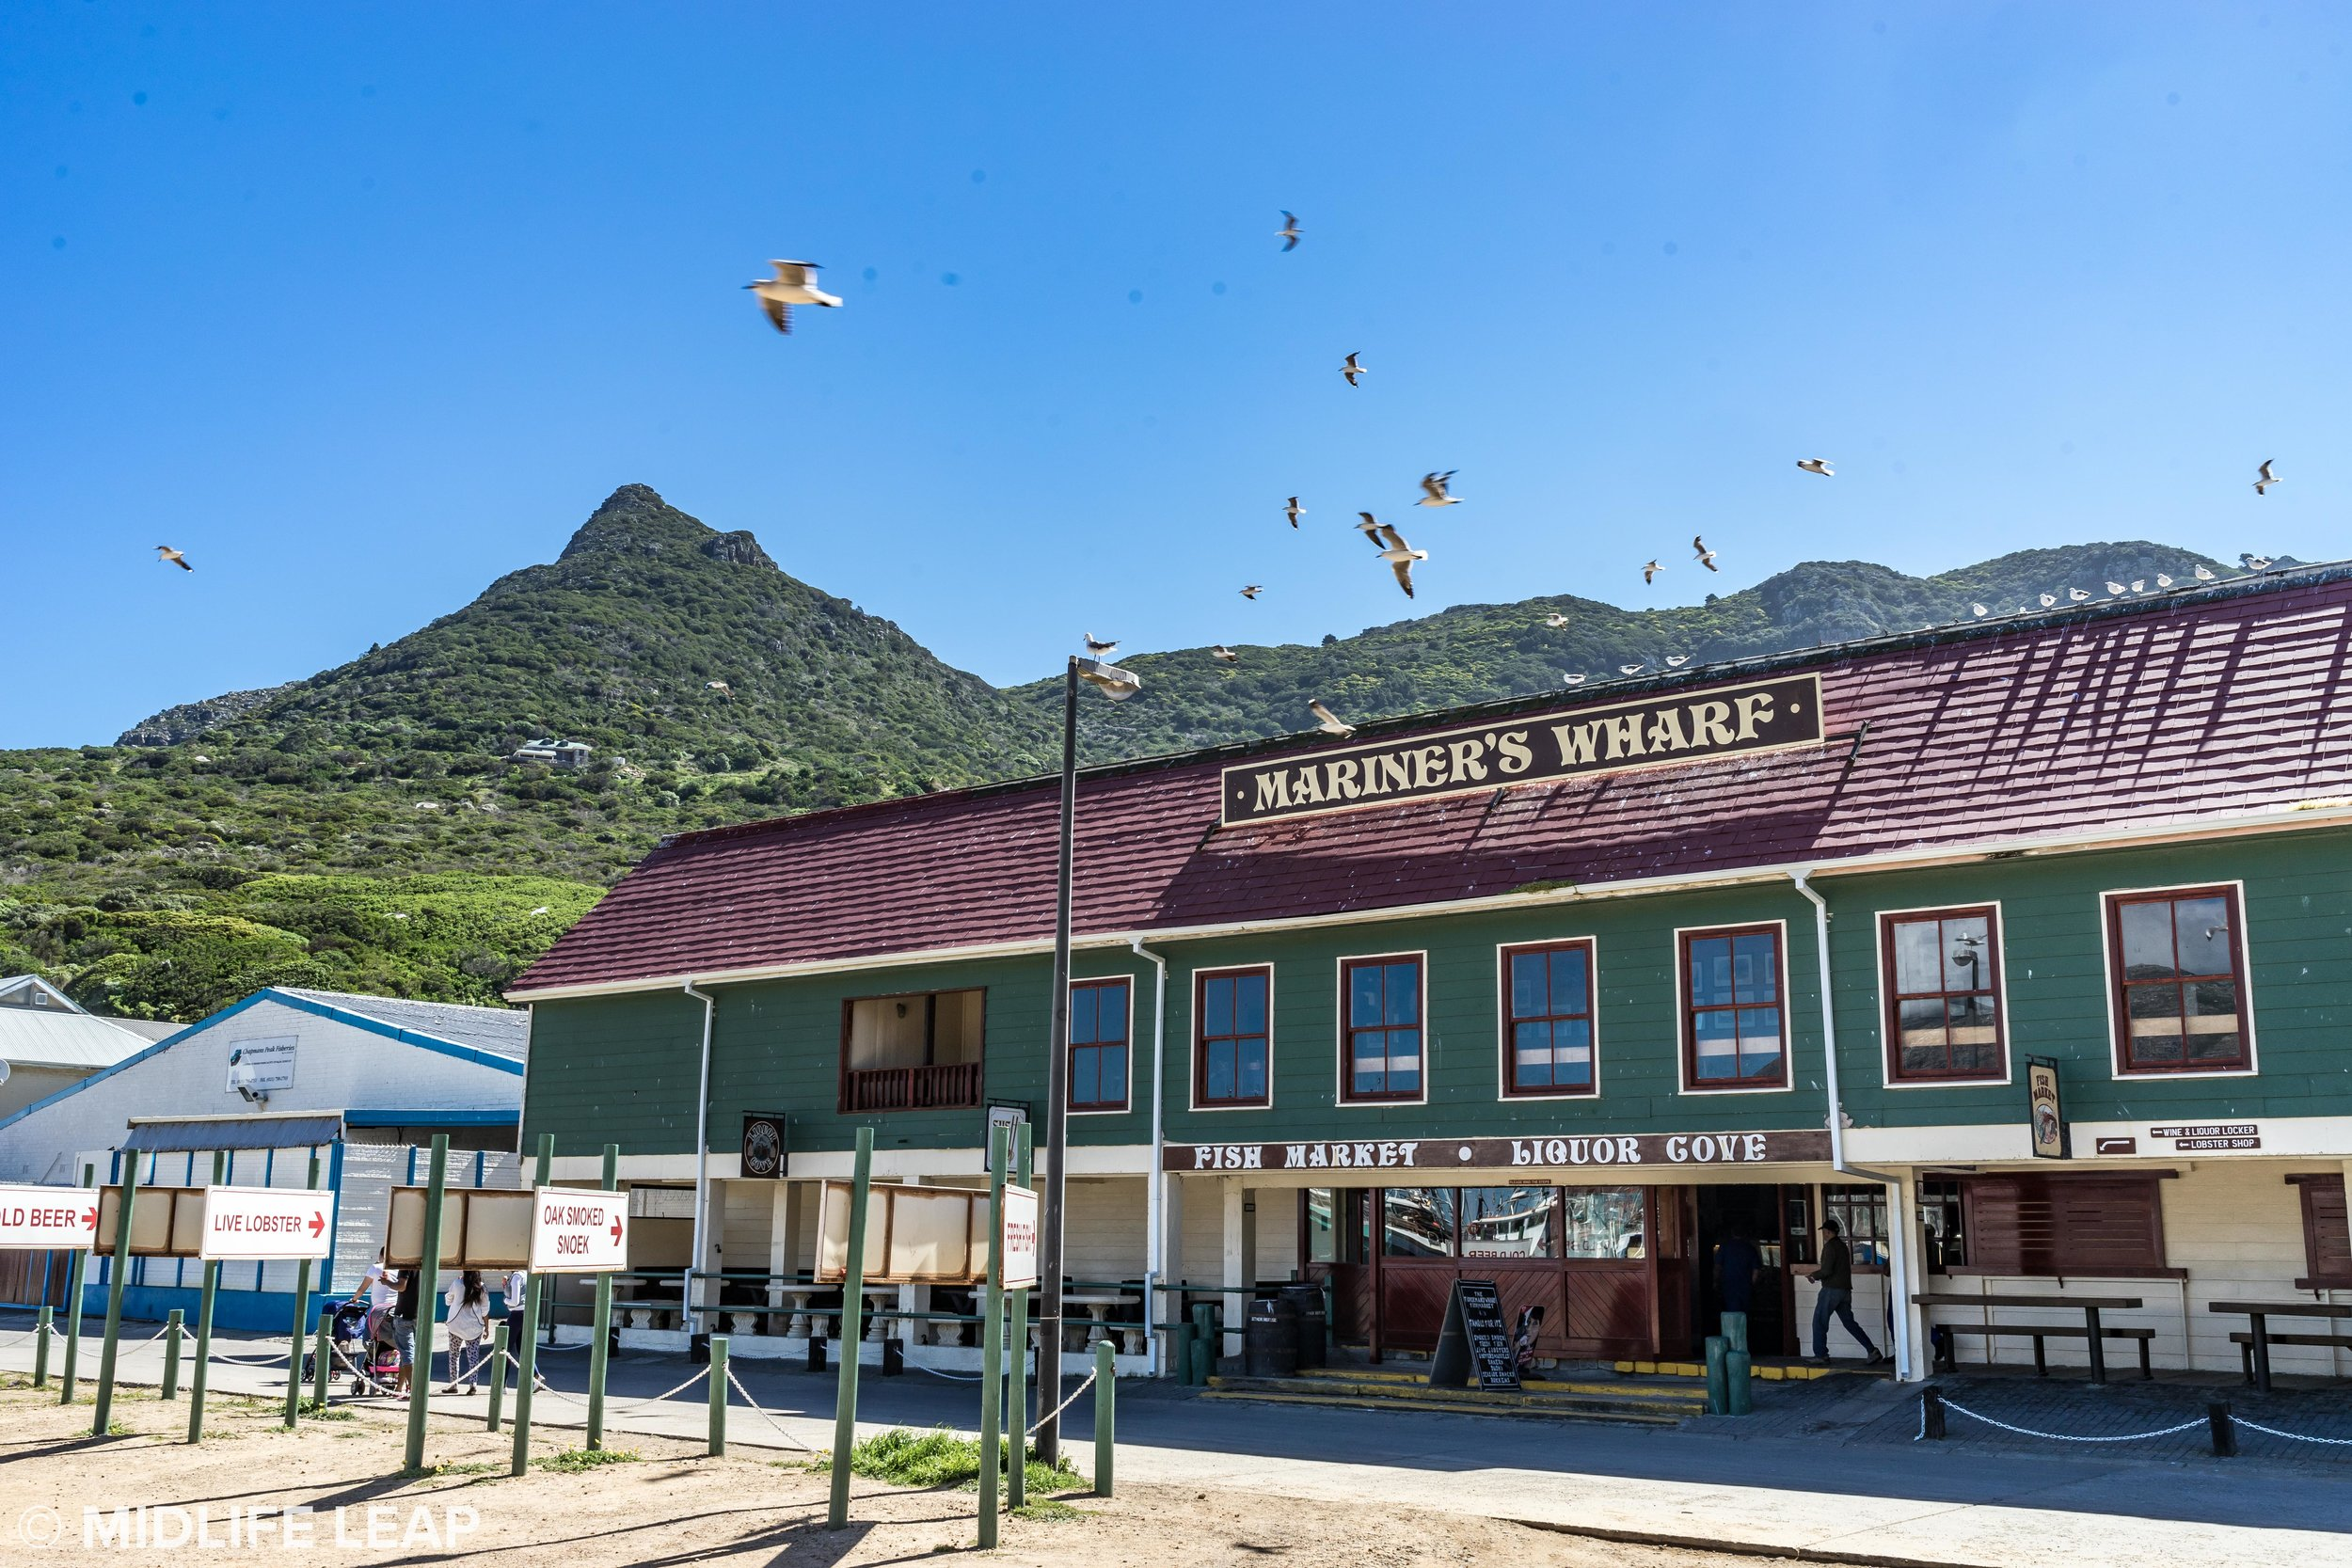 The best fish & chips at Mariner's Wharf, Hout Bay